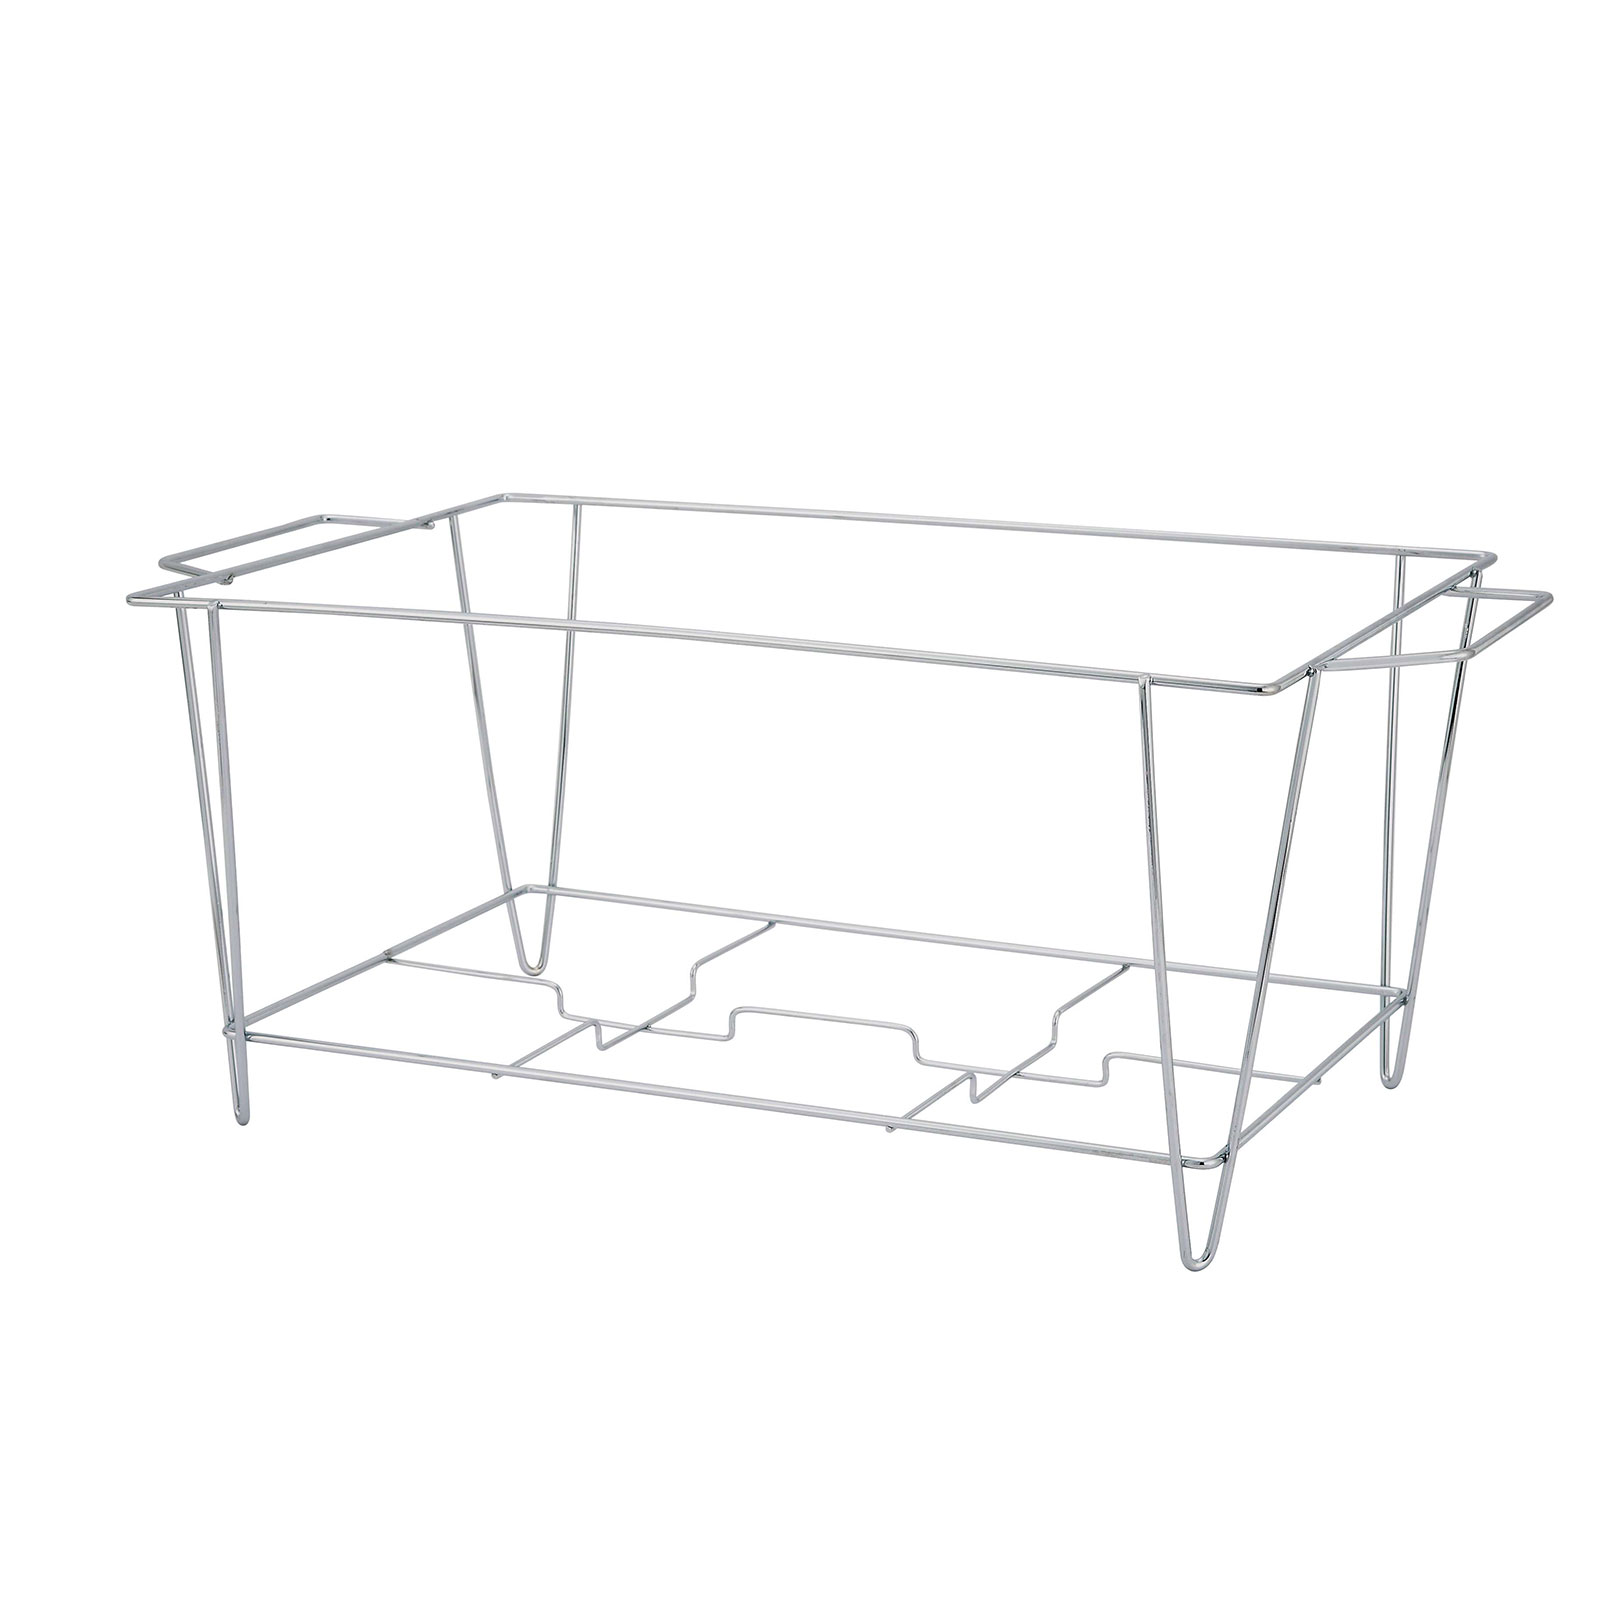 Winco C-3F chafing dish frame / stand